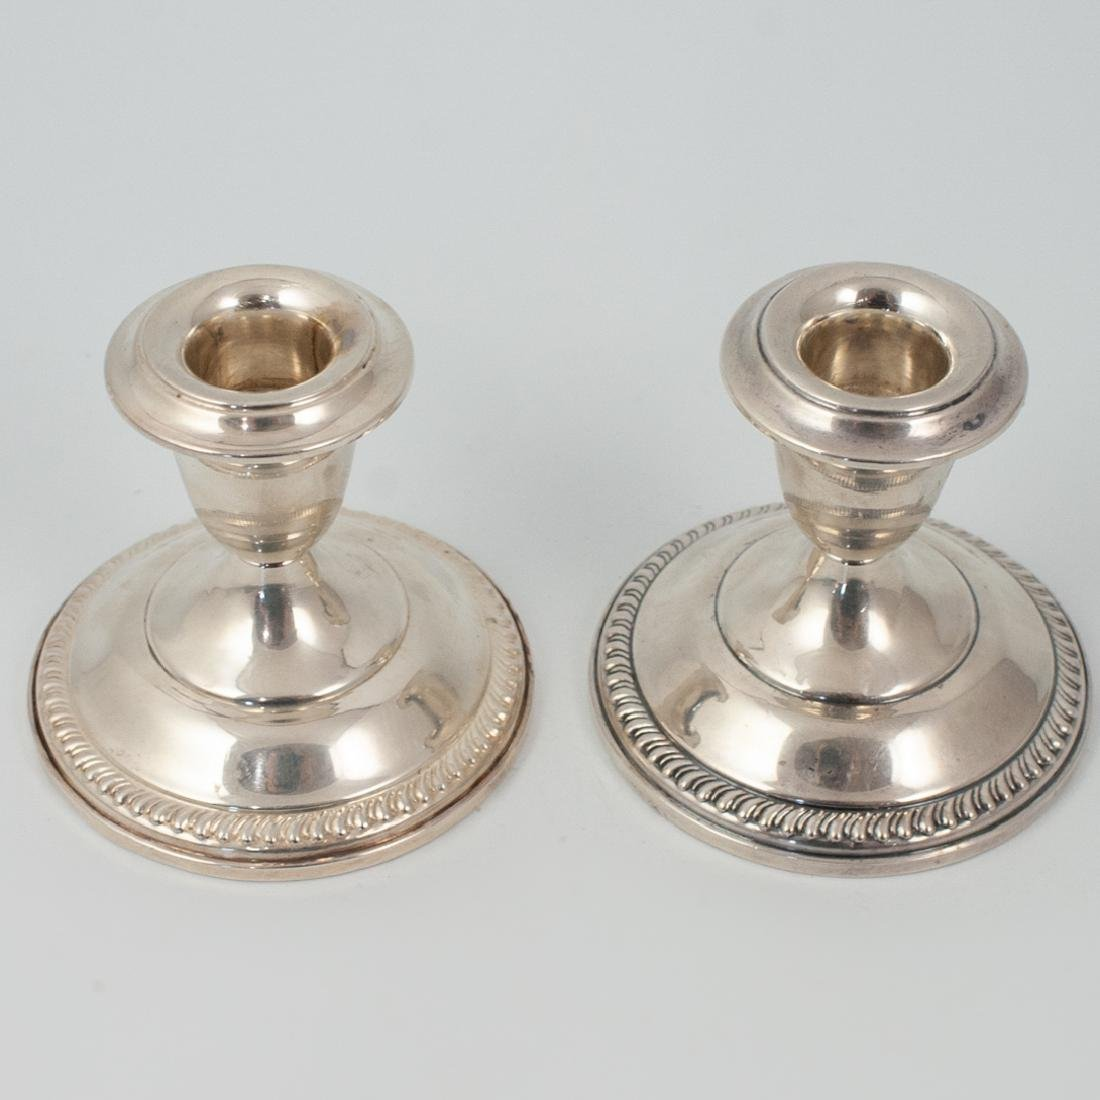 Empire Sterling Weighted Candlesticks - 3